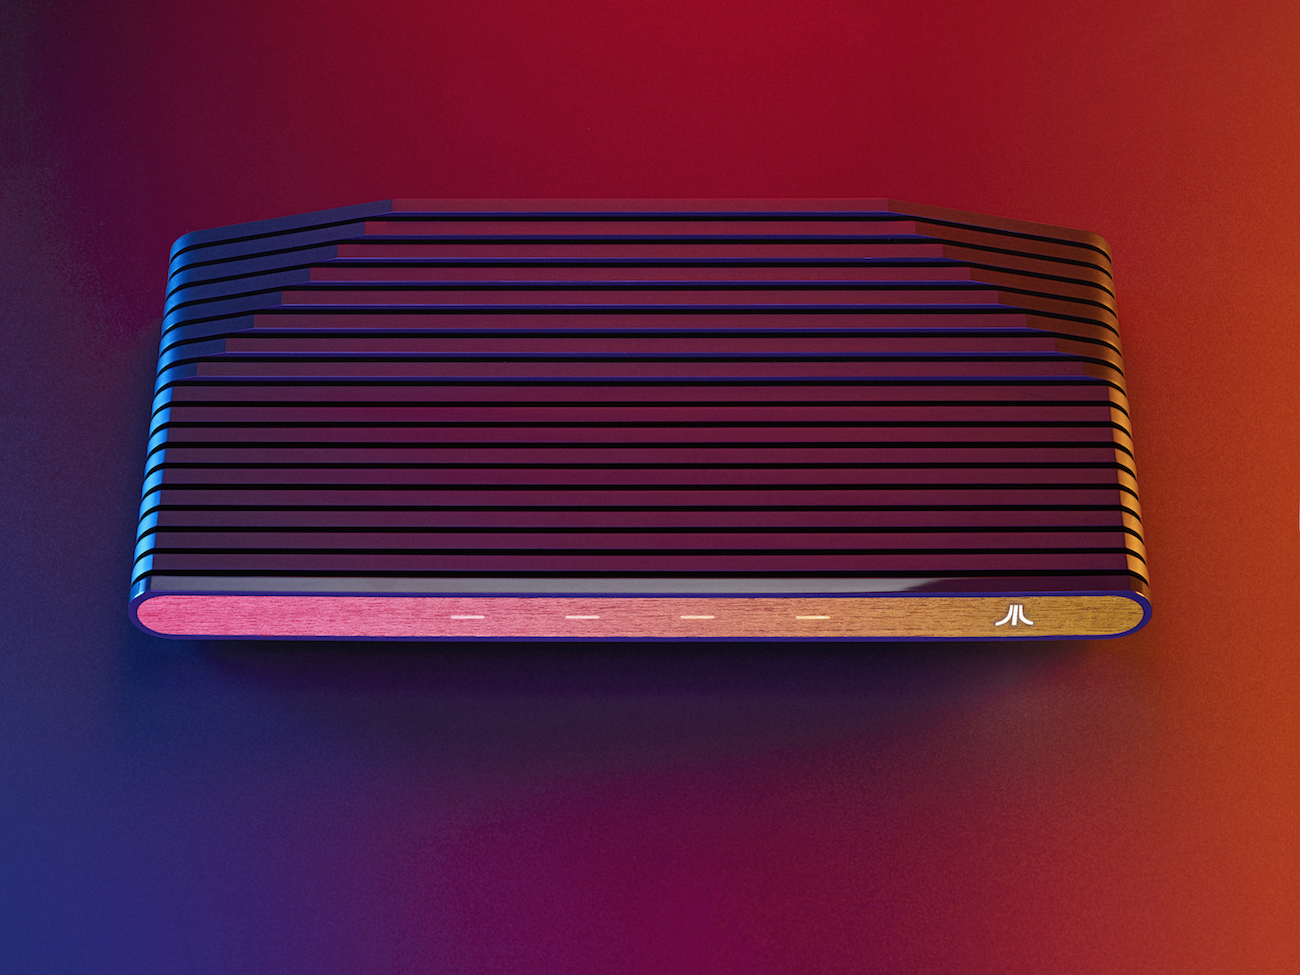 05162018_Atari_Stylized_Console_WOOD_STACKED_01_FINAL